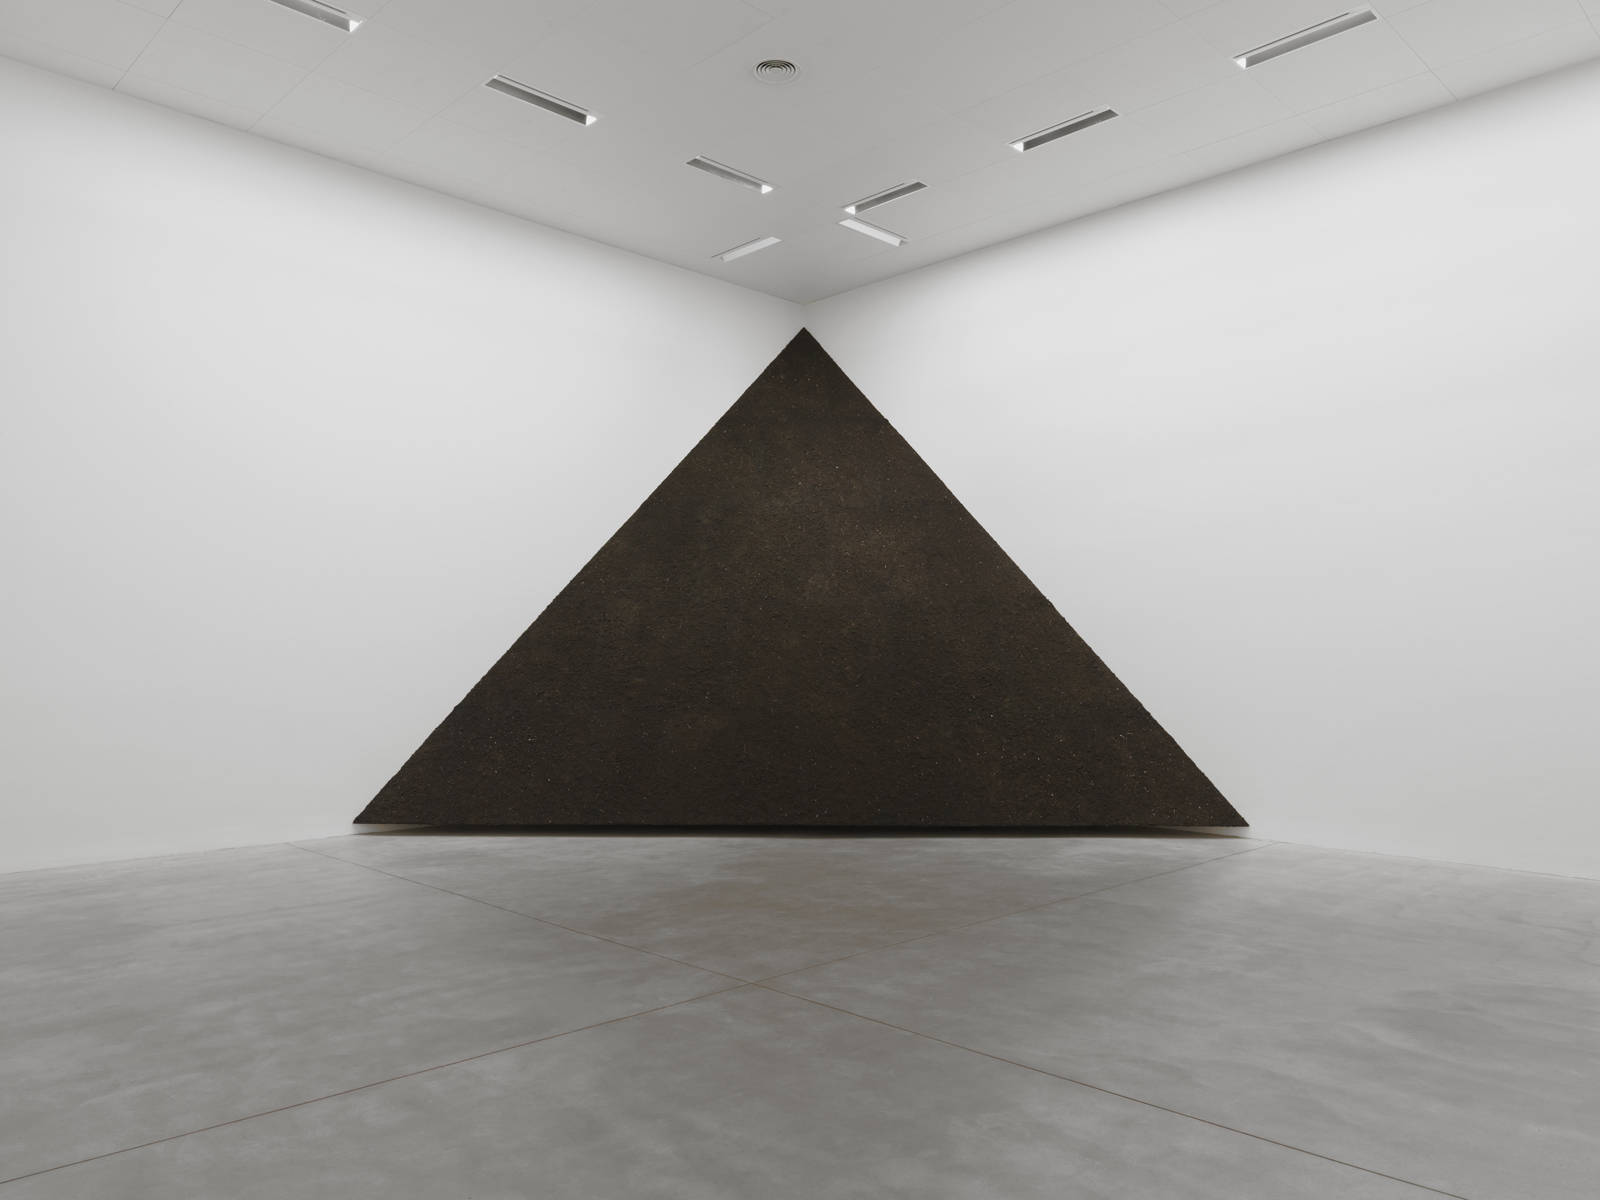 Ugo Rondinone / Barbara Gladstone Gallery, New York